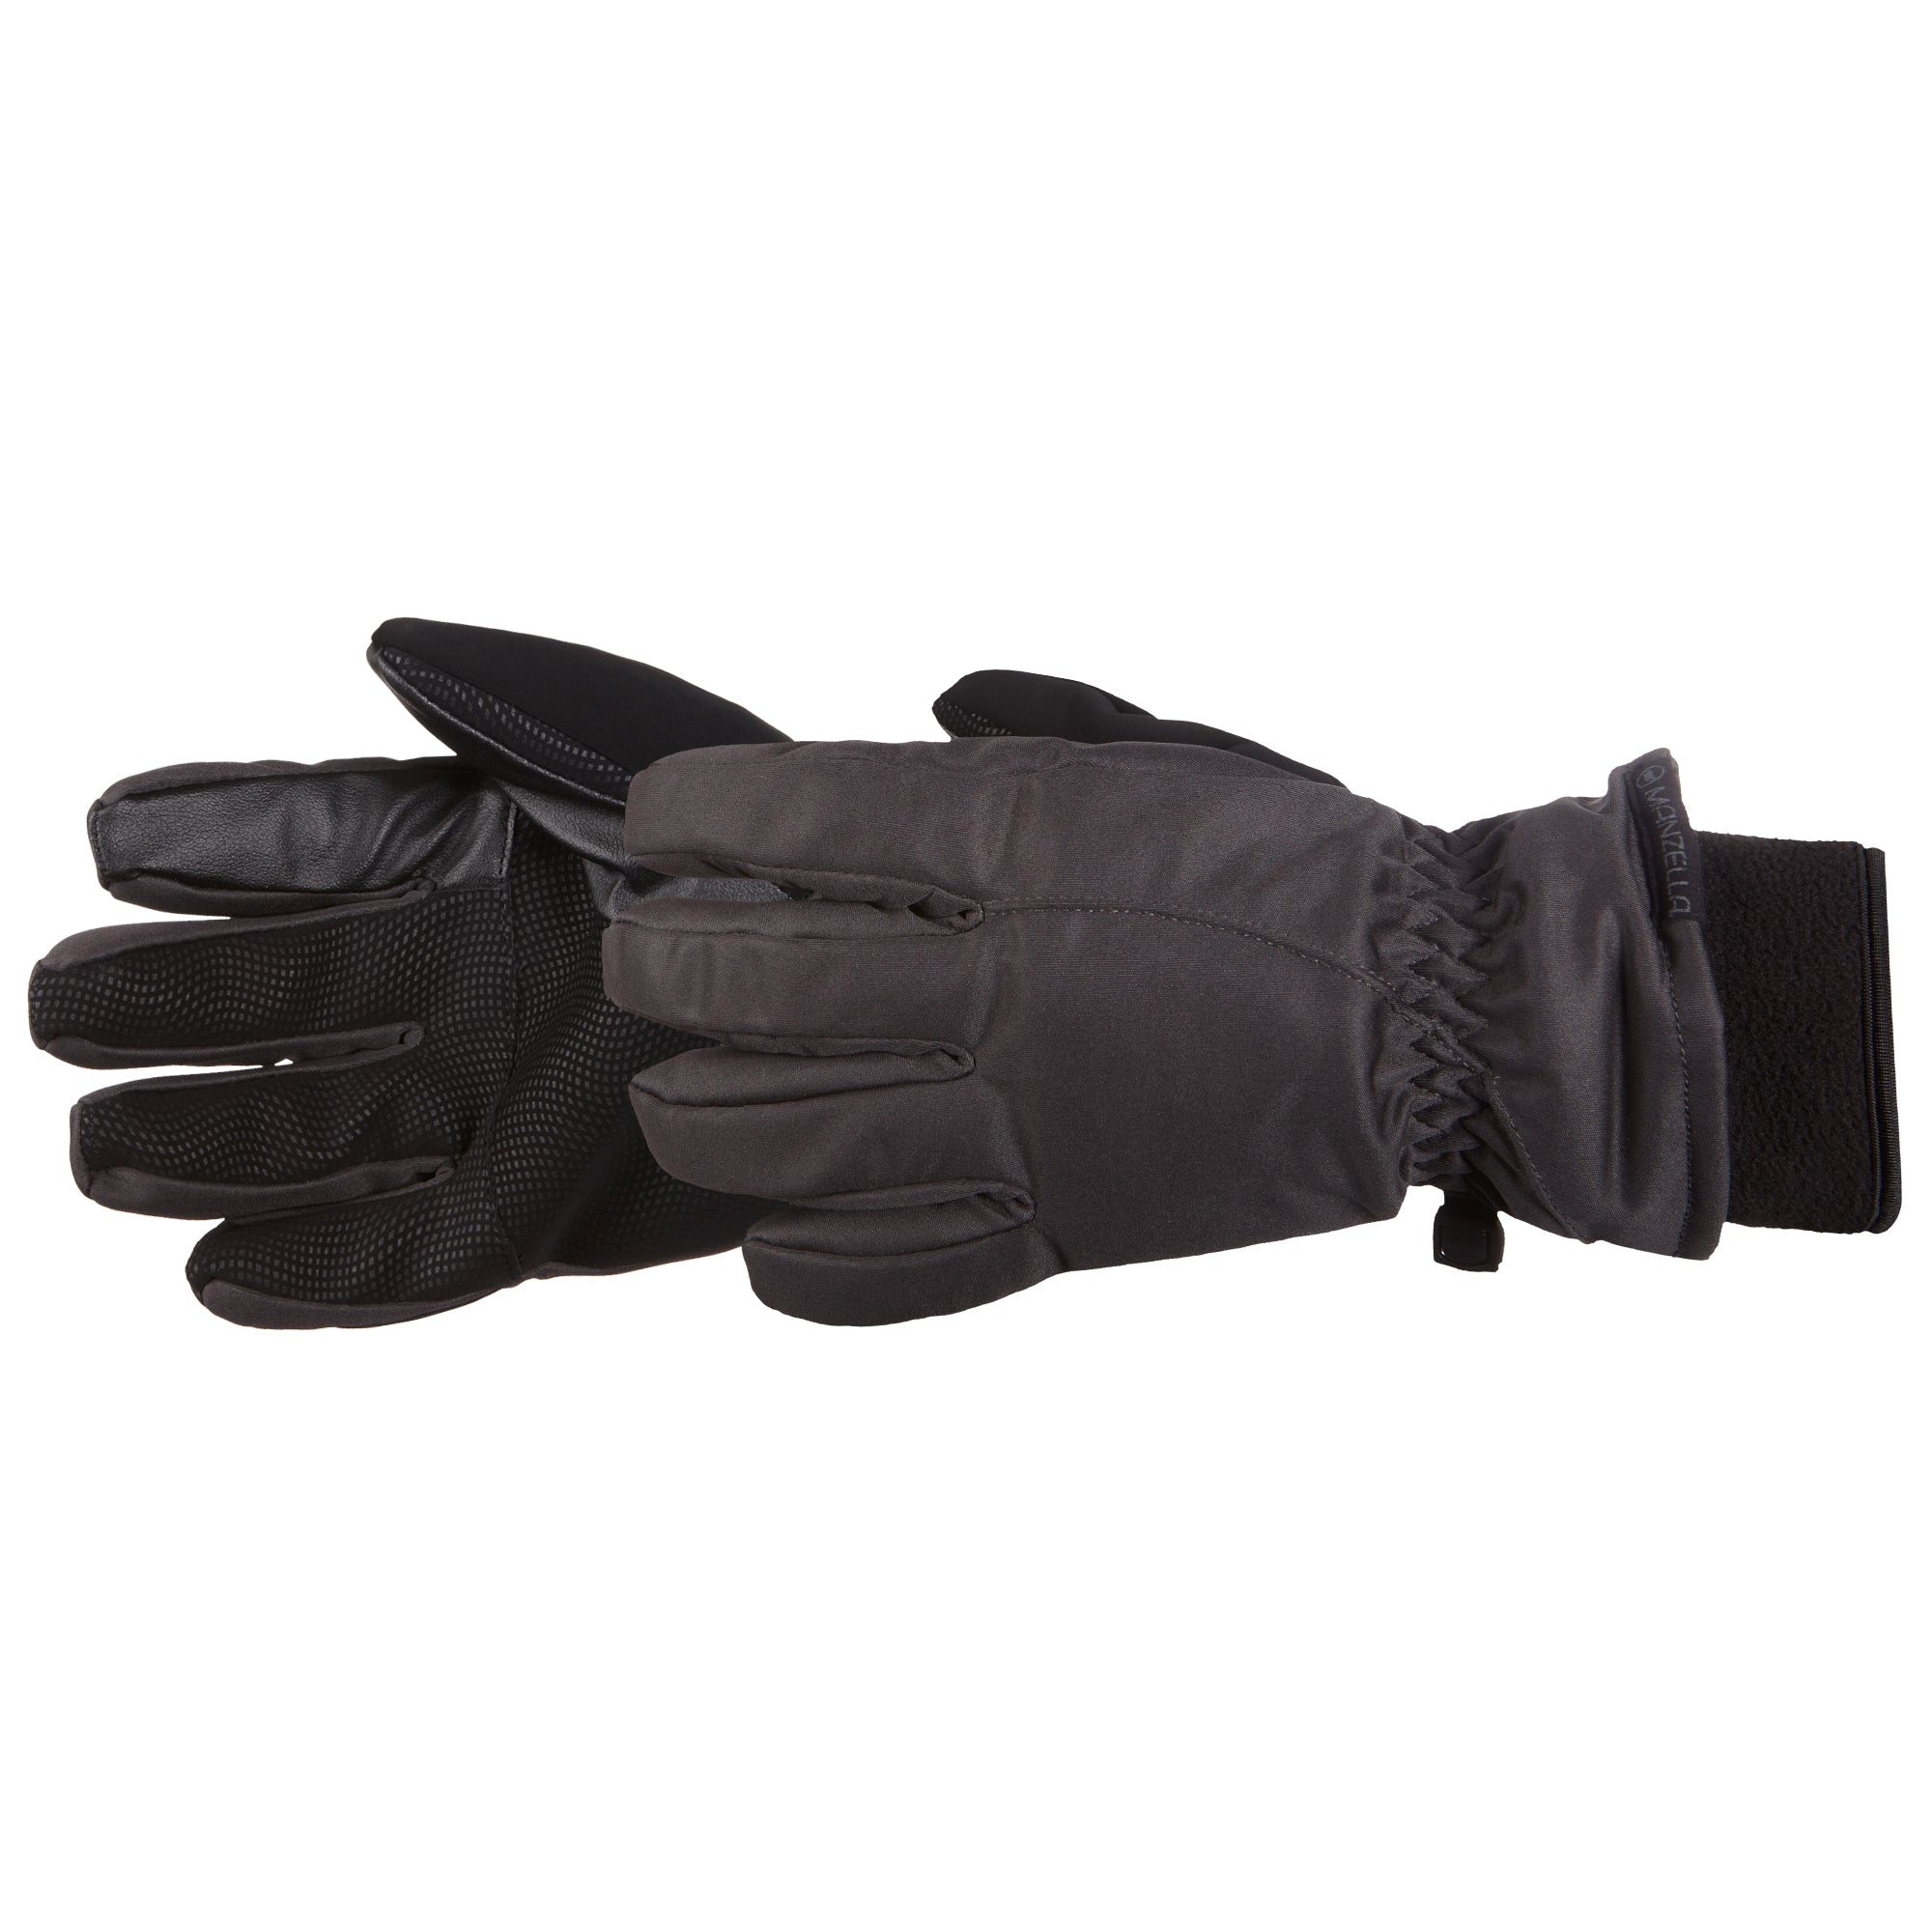 Manzella INSPIRE Outdoor Gloves for Women